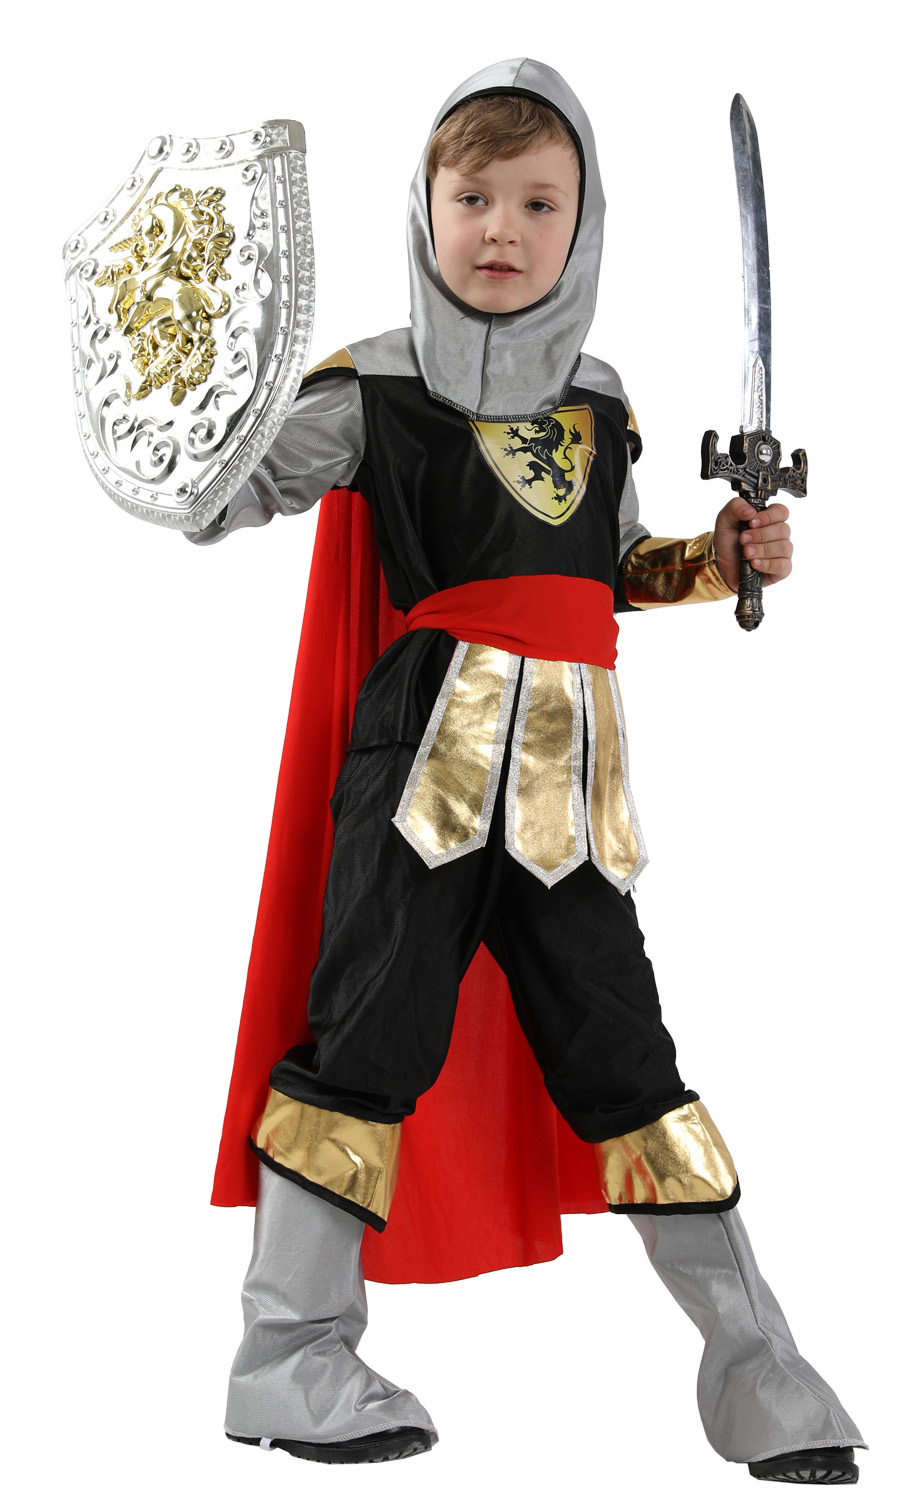 Costumes & Accessories Novelty & Special Use Armour Set Anime Cosplay For Kids Weapon Set Warrior And Sword Knight Vestidos Costumes For Children In Halloween Carnival Party